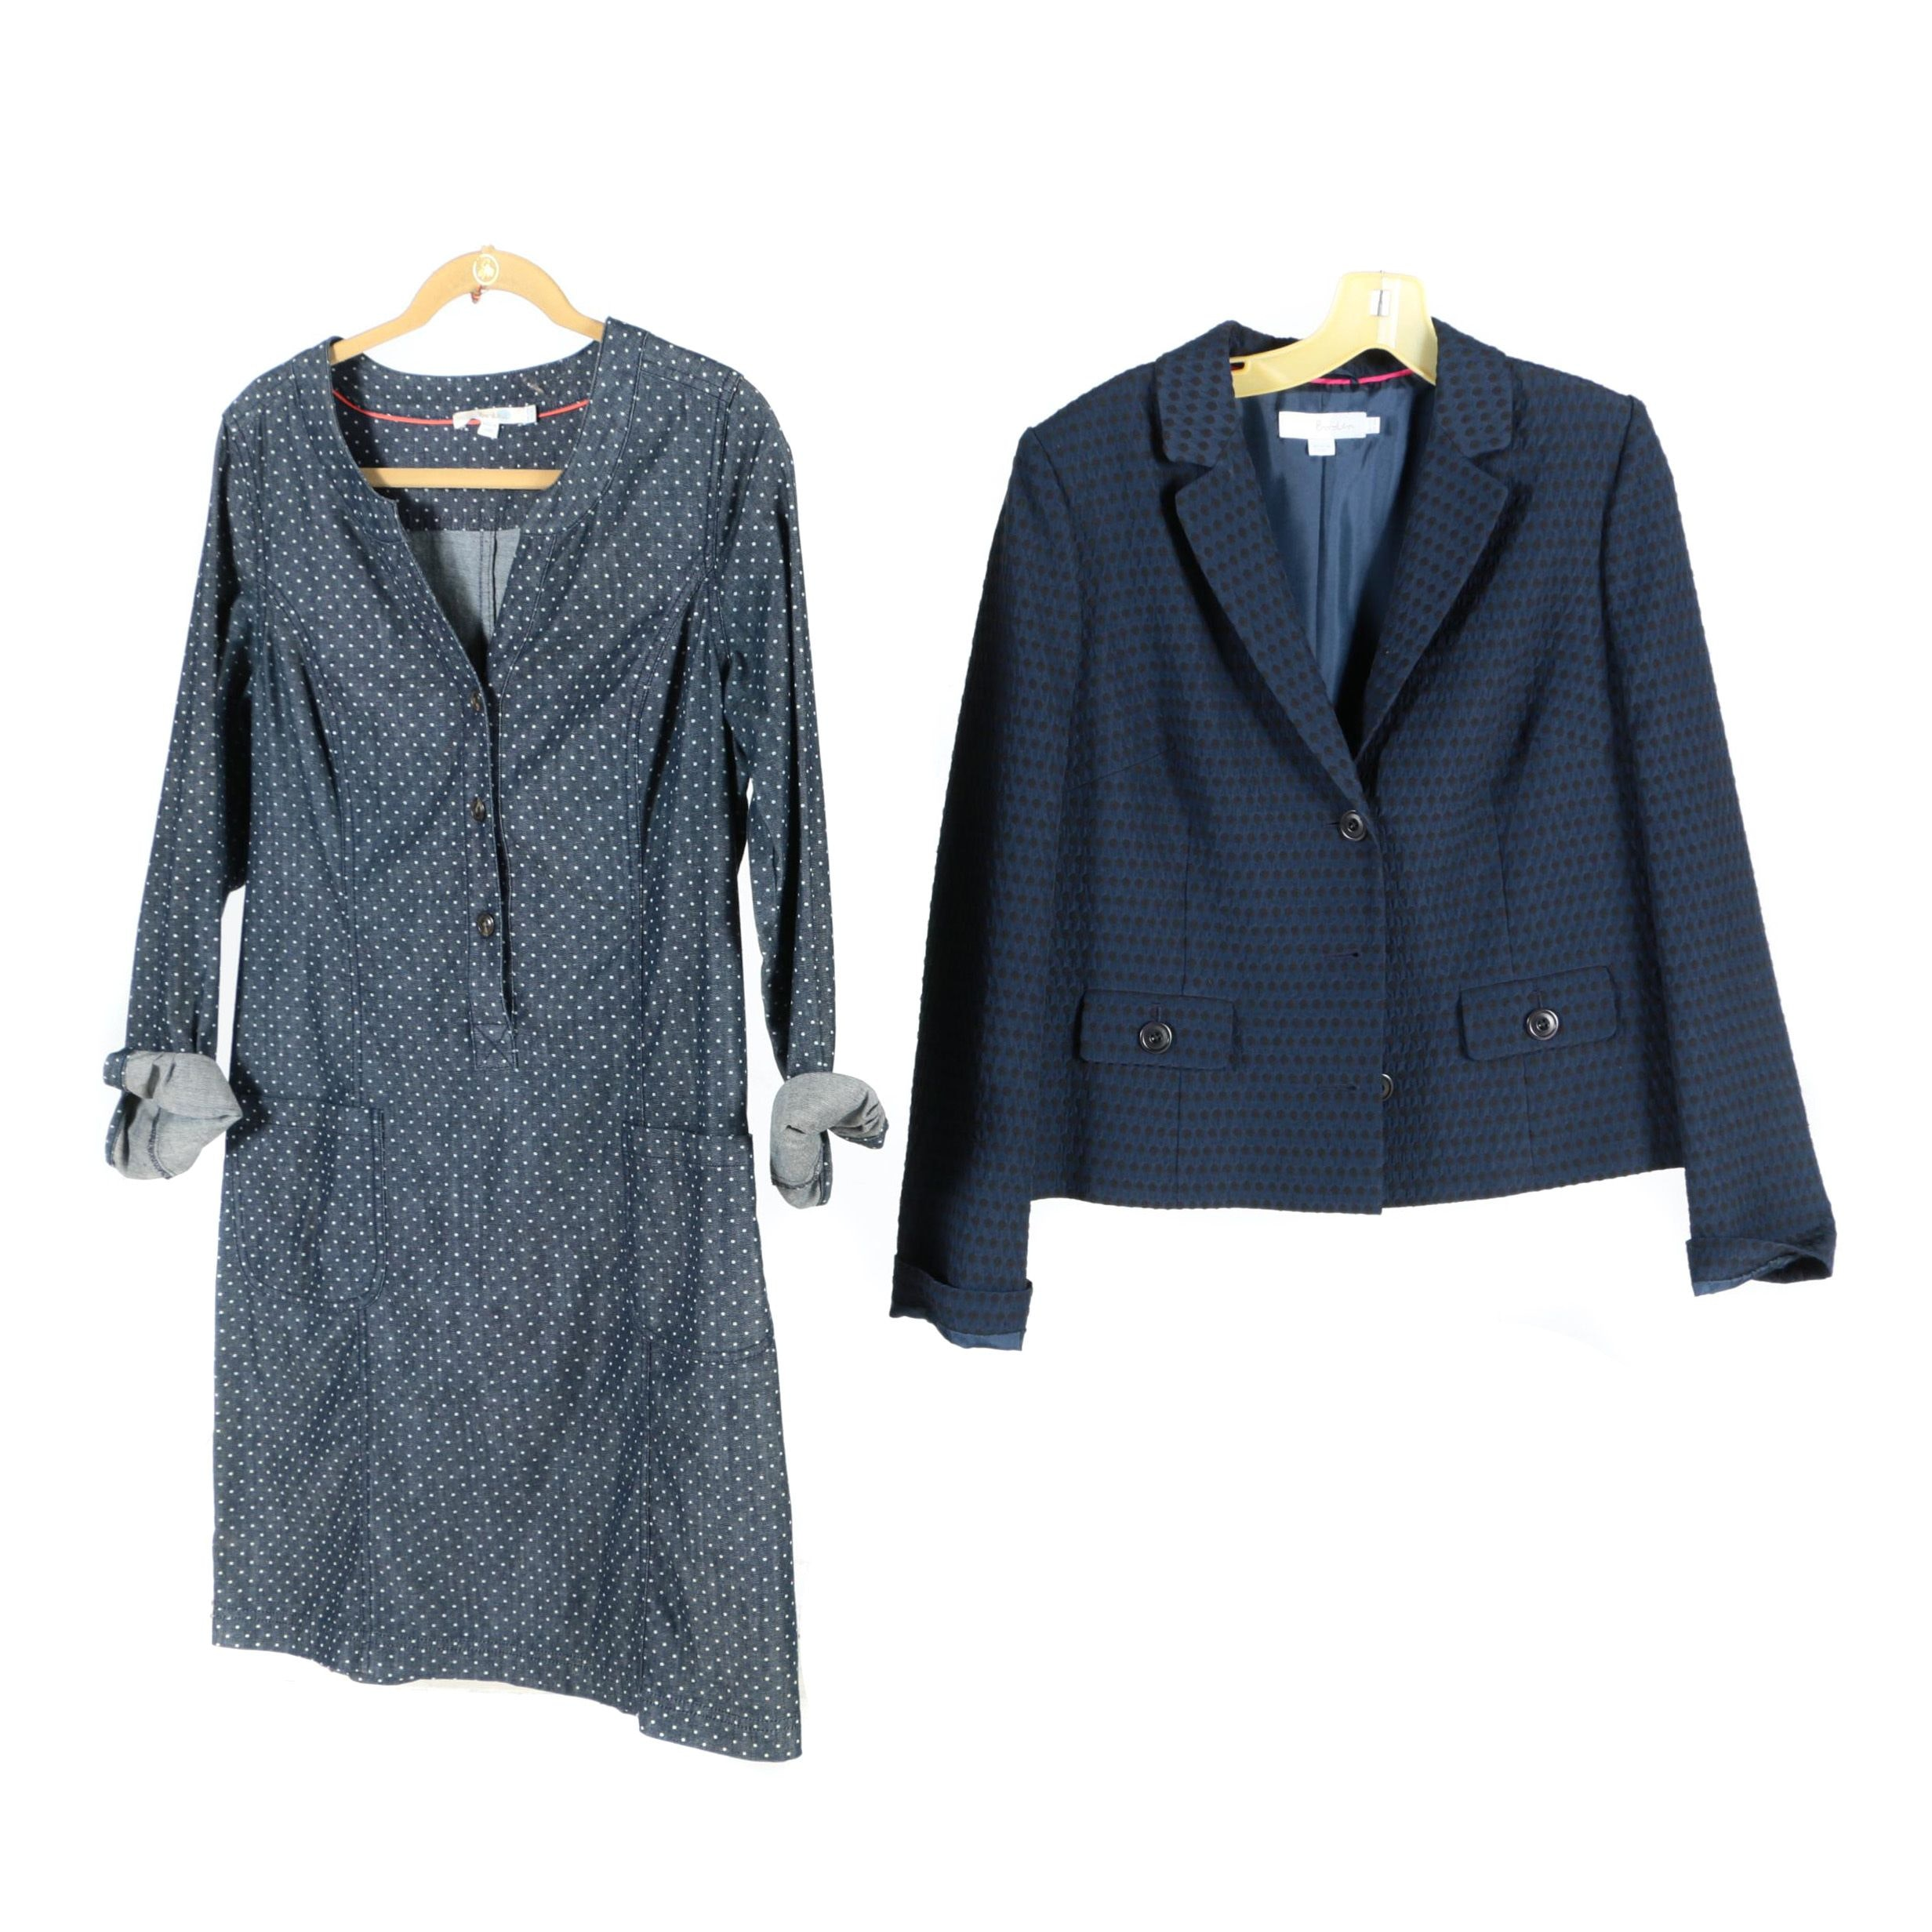 Women's Boden Blue Jacket and Dress